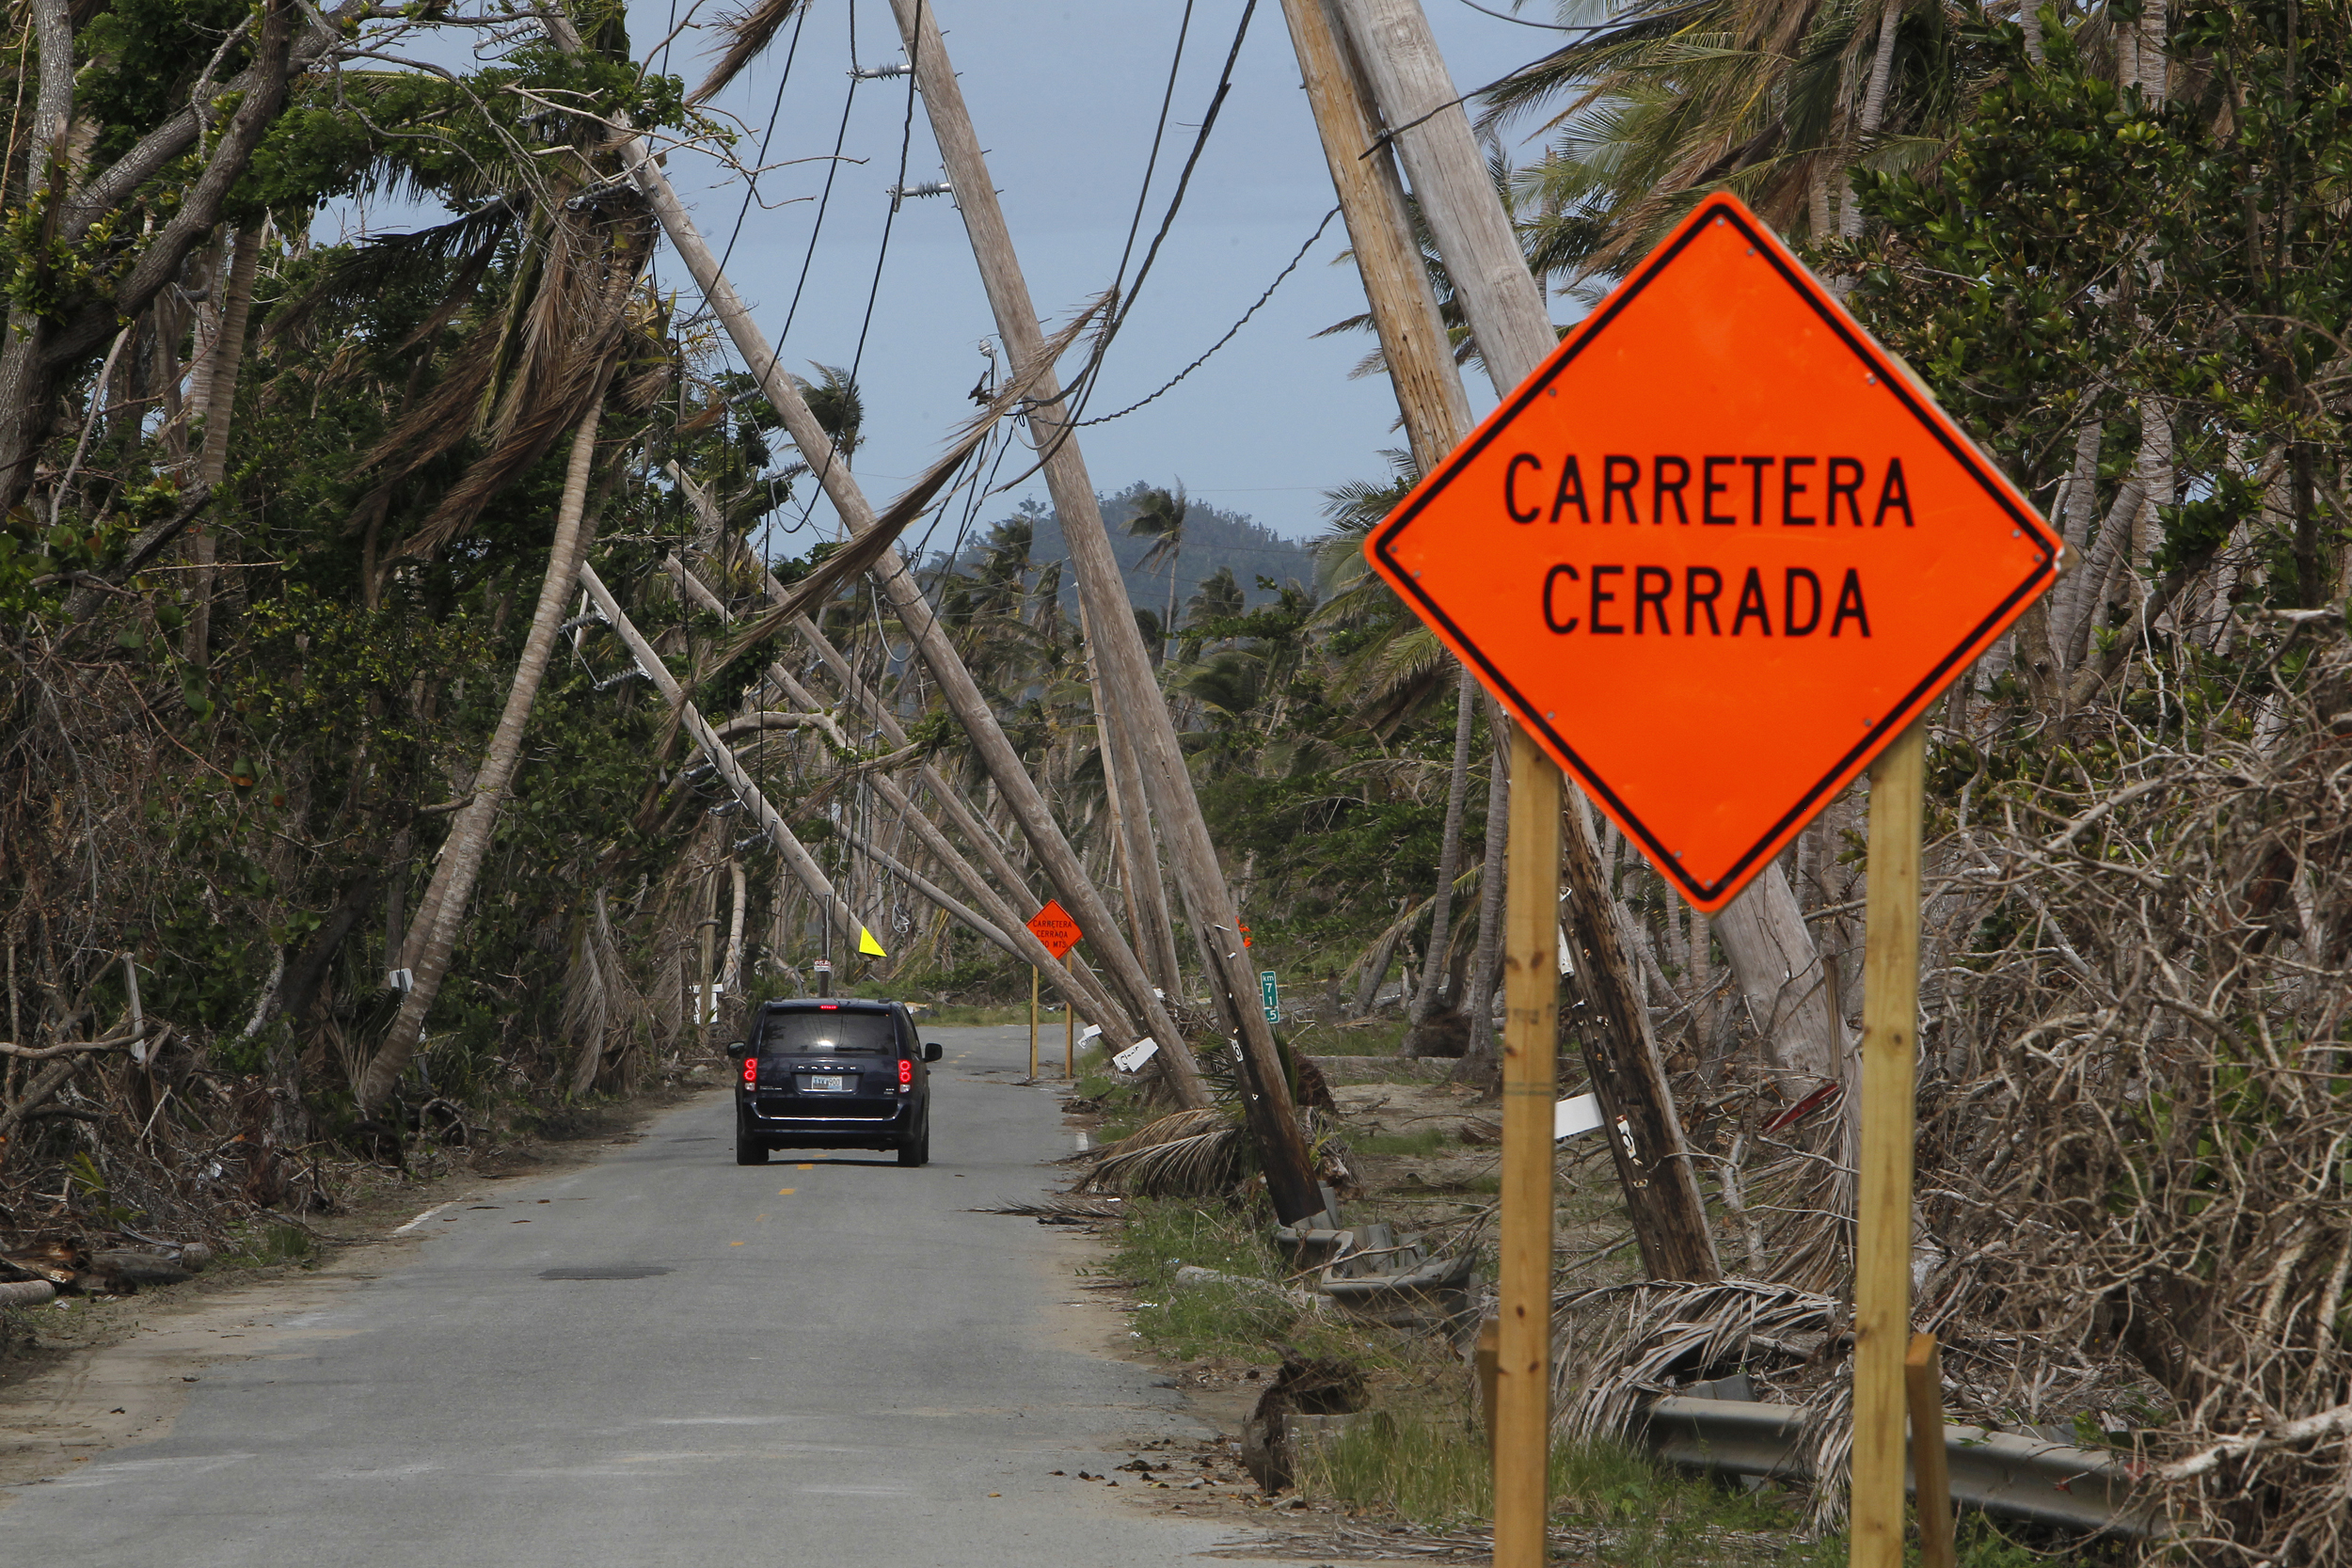 Puerto Rico to privatize its electric company